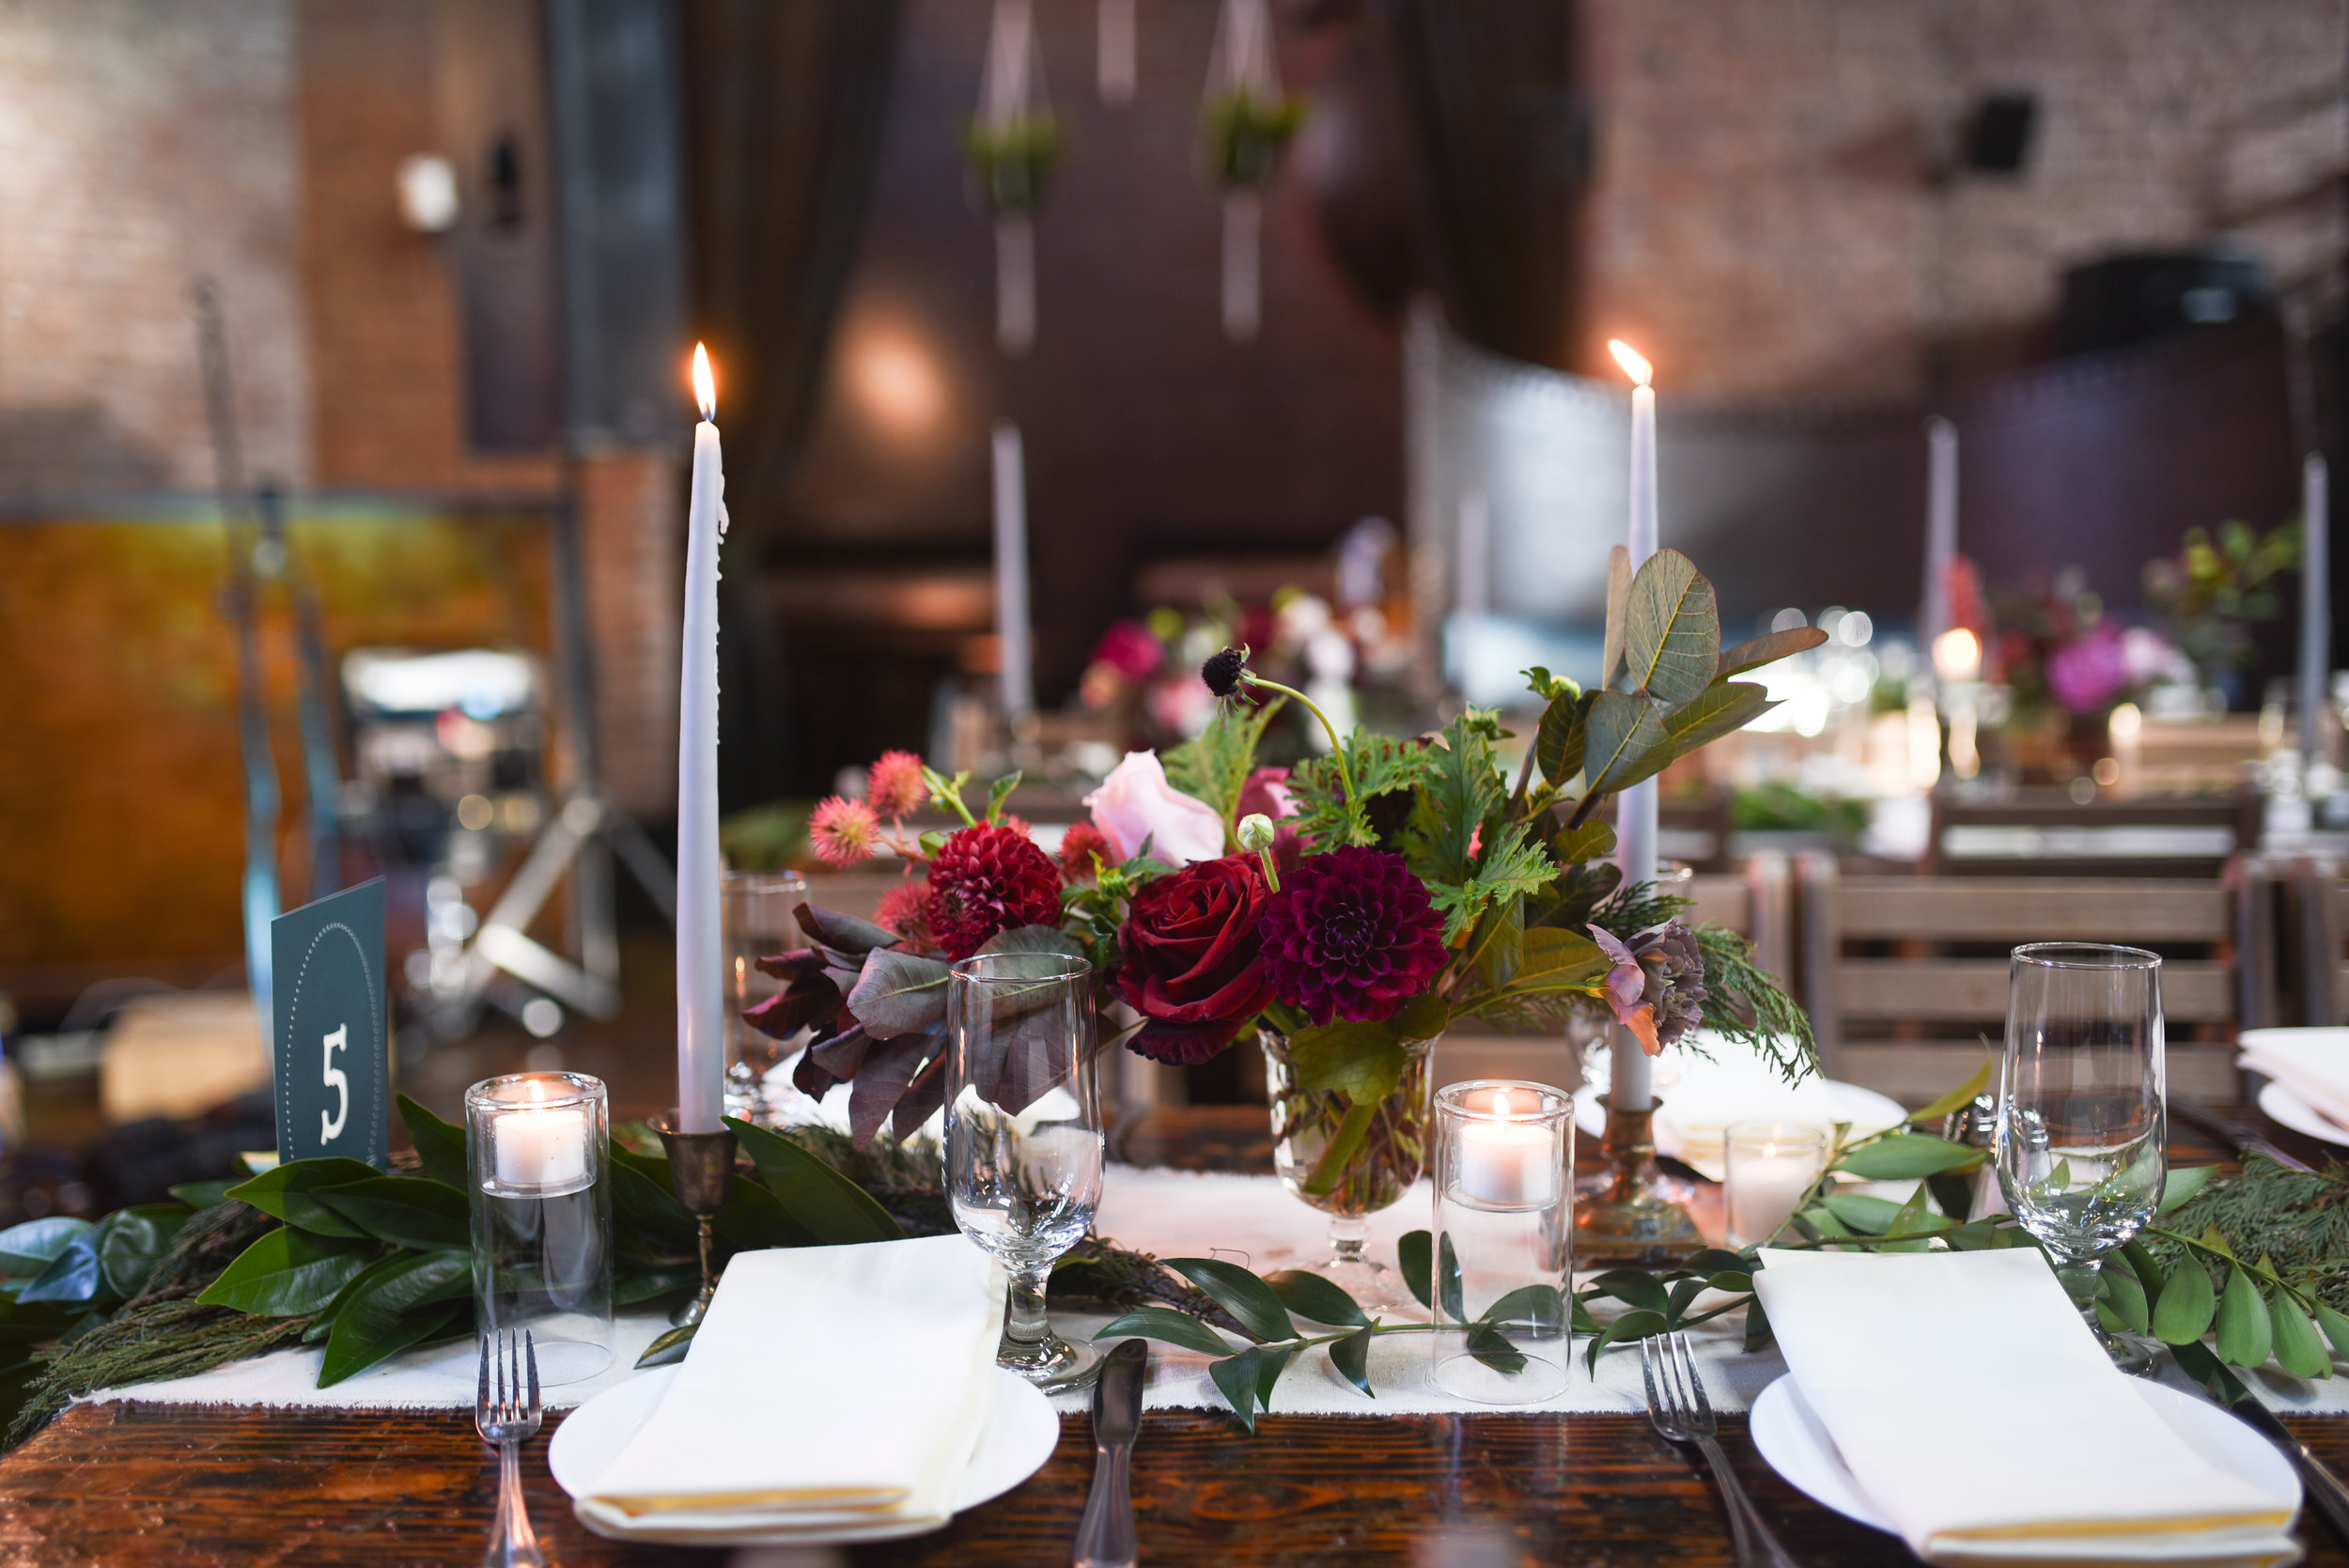 Lovely jewel toned centerpieces for this wedding at MyMoon in Williamsburg, Brooklyn